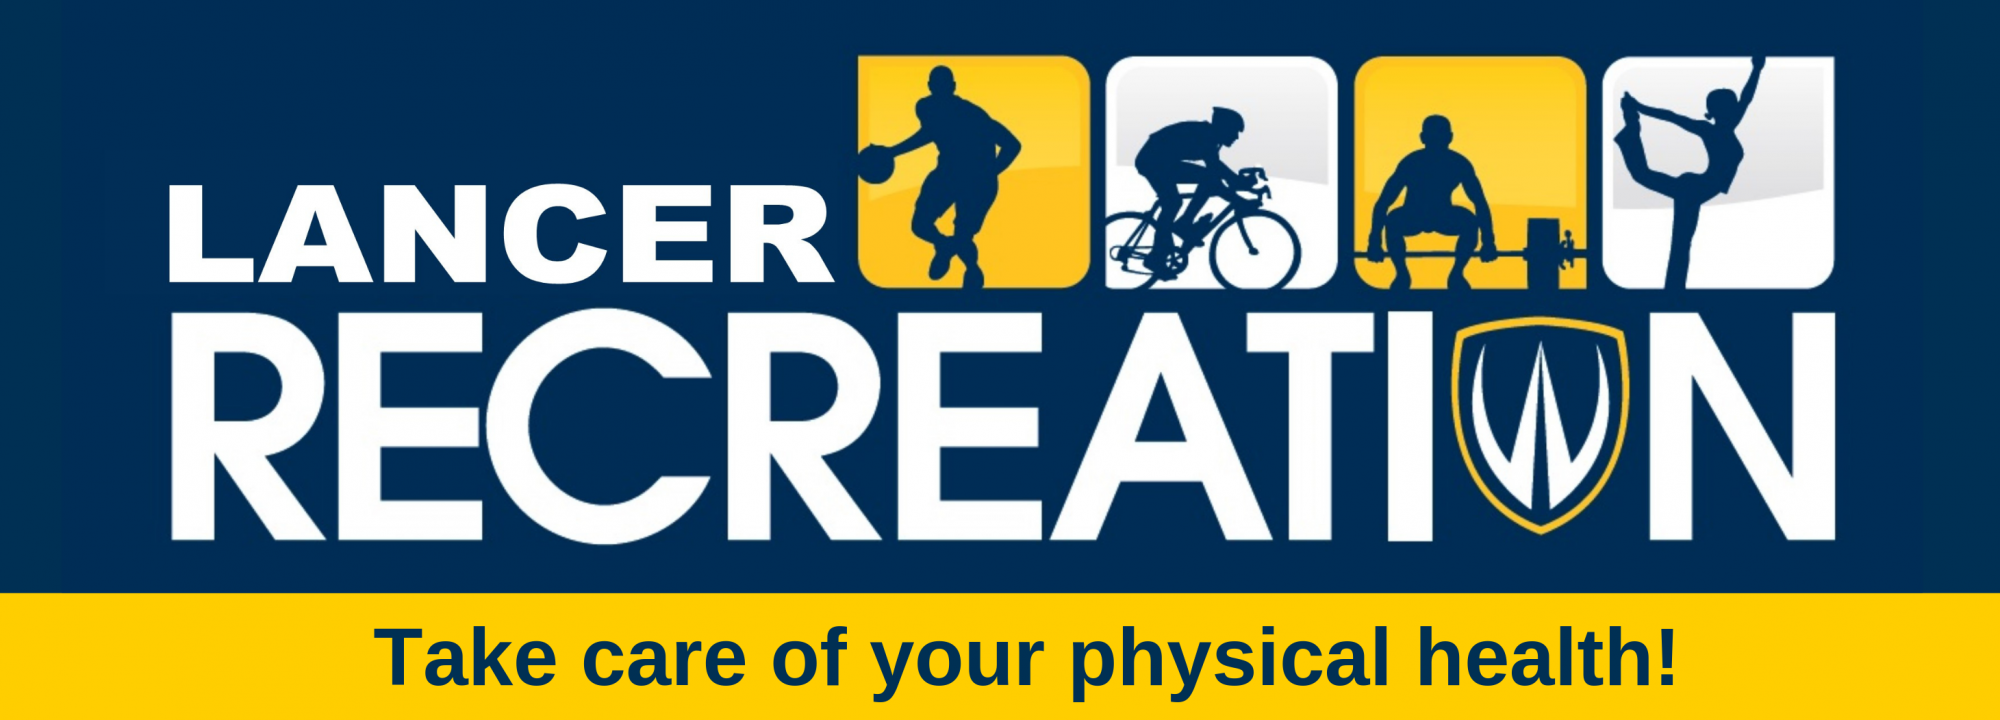 Lancer Recreation - Take care of your physical health :)